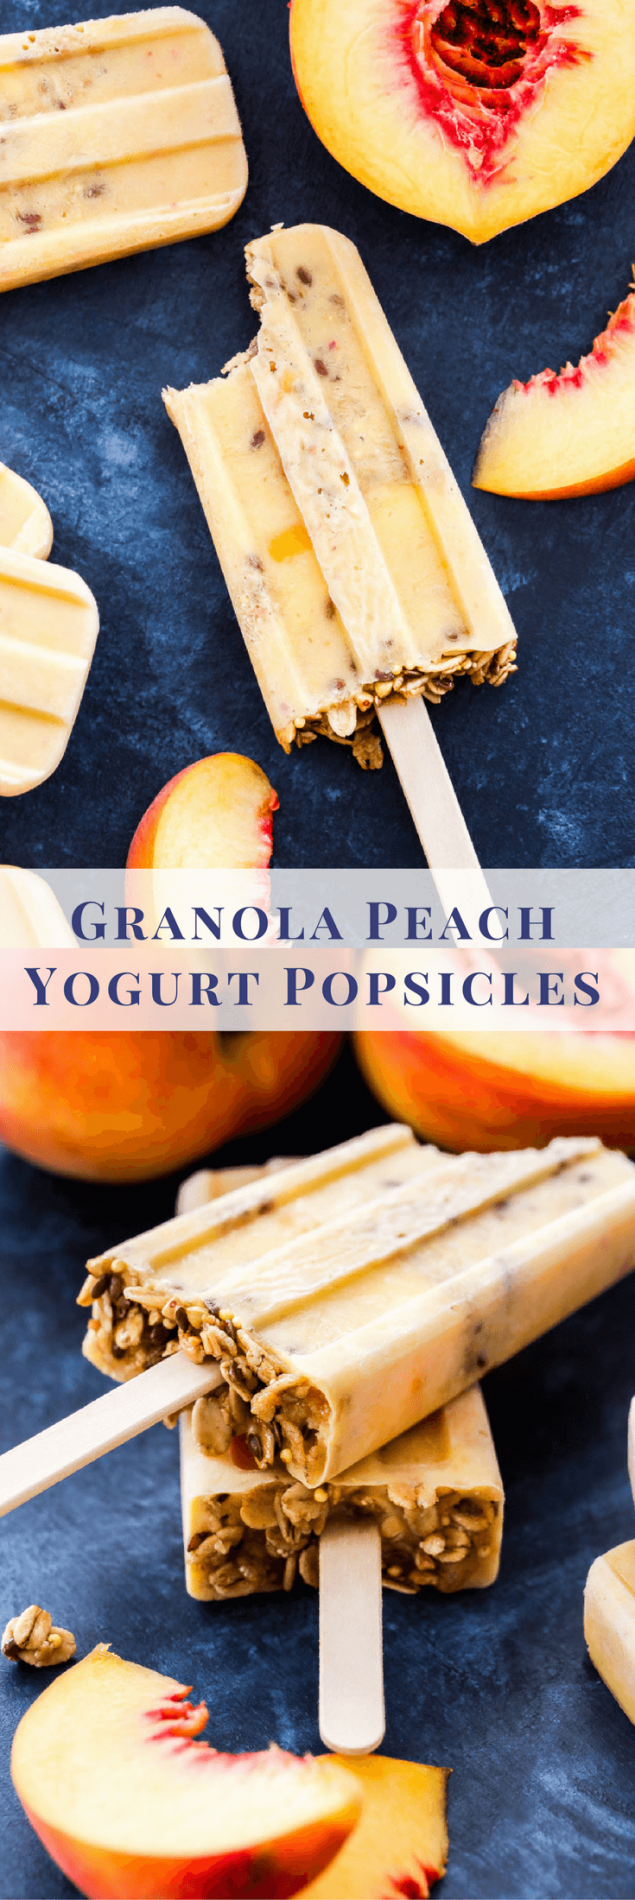 Granola Peach Yogurt Popsicles are perfect for summer snacking! Fresh peaches, Greek yogurt and honey are blended together then combined with layers of granola for the ultimate healthy treat!